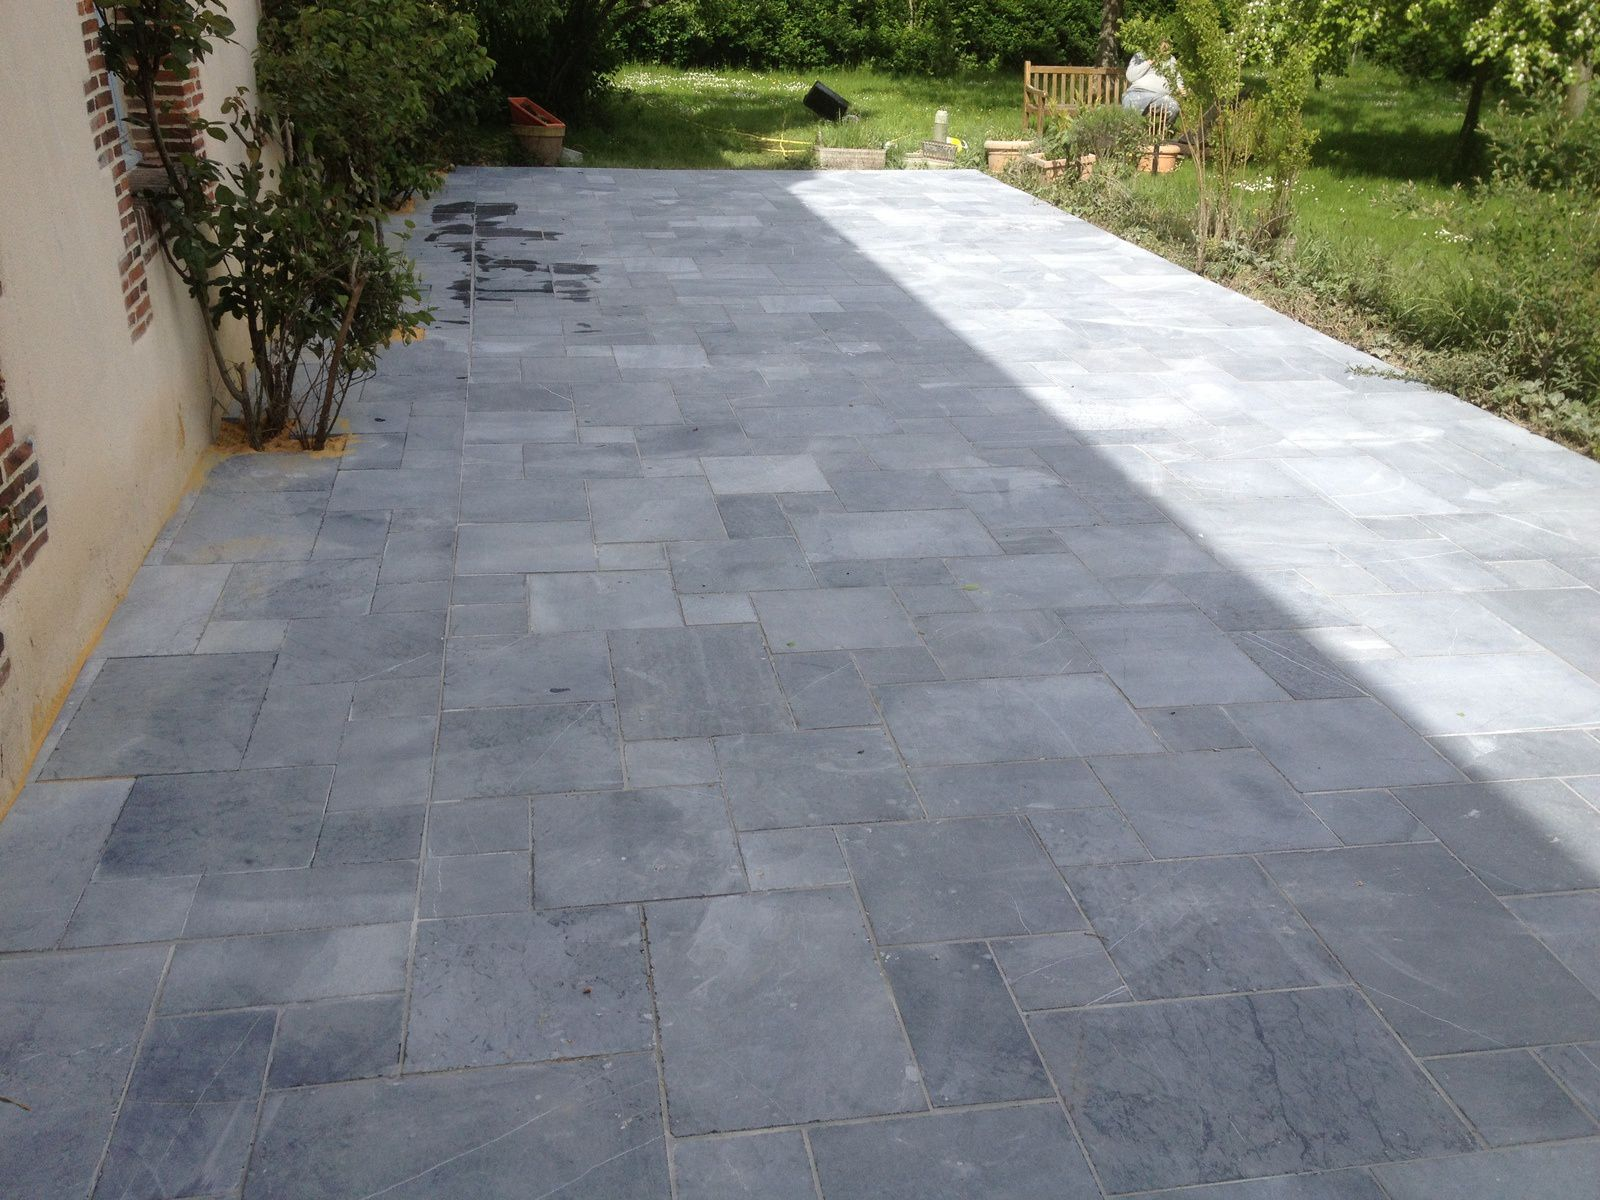 Pose carrelage terrasse pose carrelage terrasse for Poser carrelage terrasse dalle beton